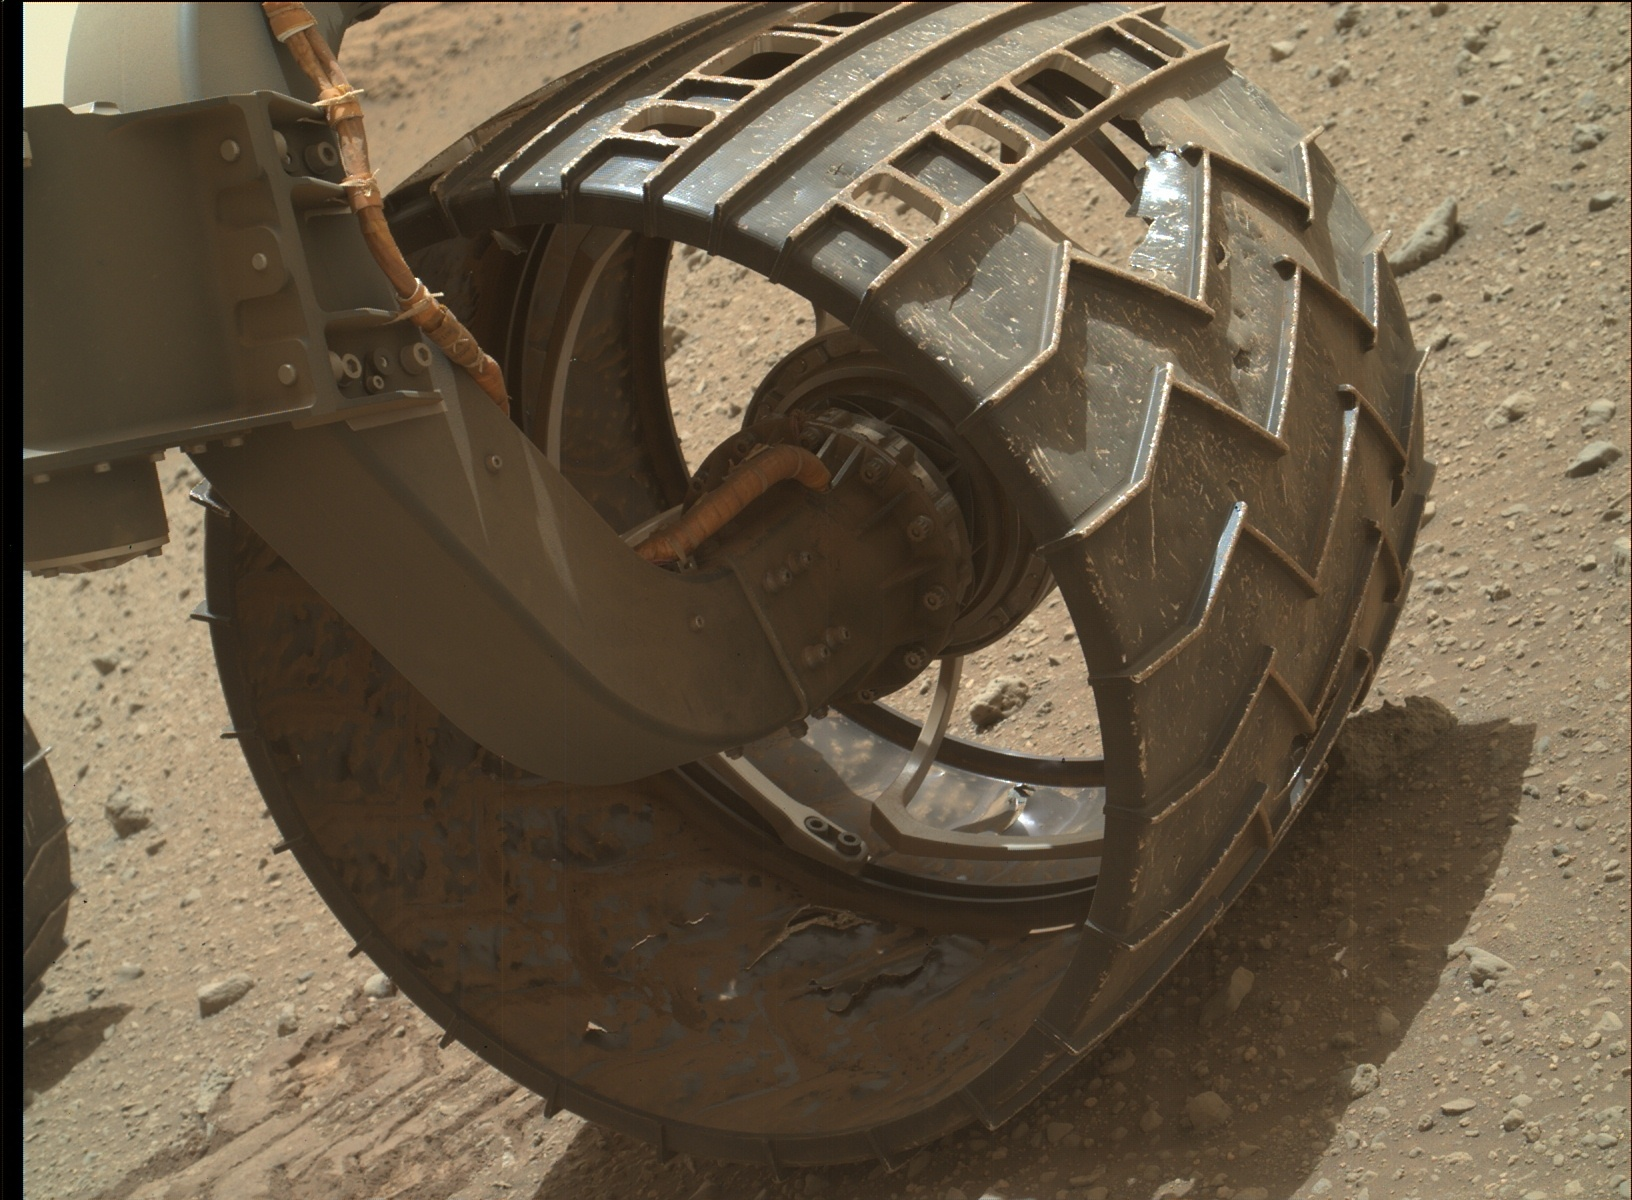 Nasa's Mars rover Curiosity acquired this image using its Mars Hand Lens Imager (MAHLI) on Sol 962